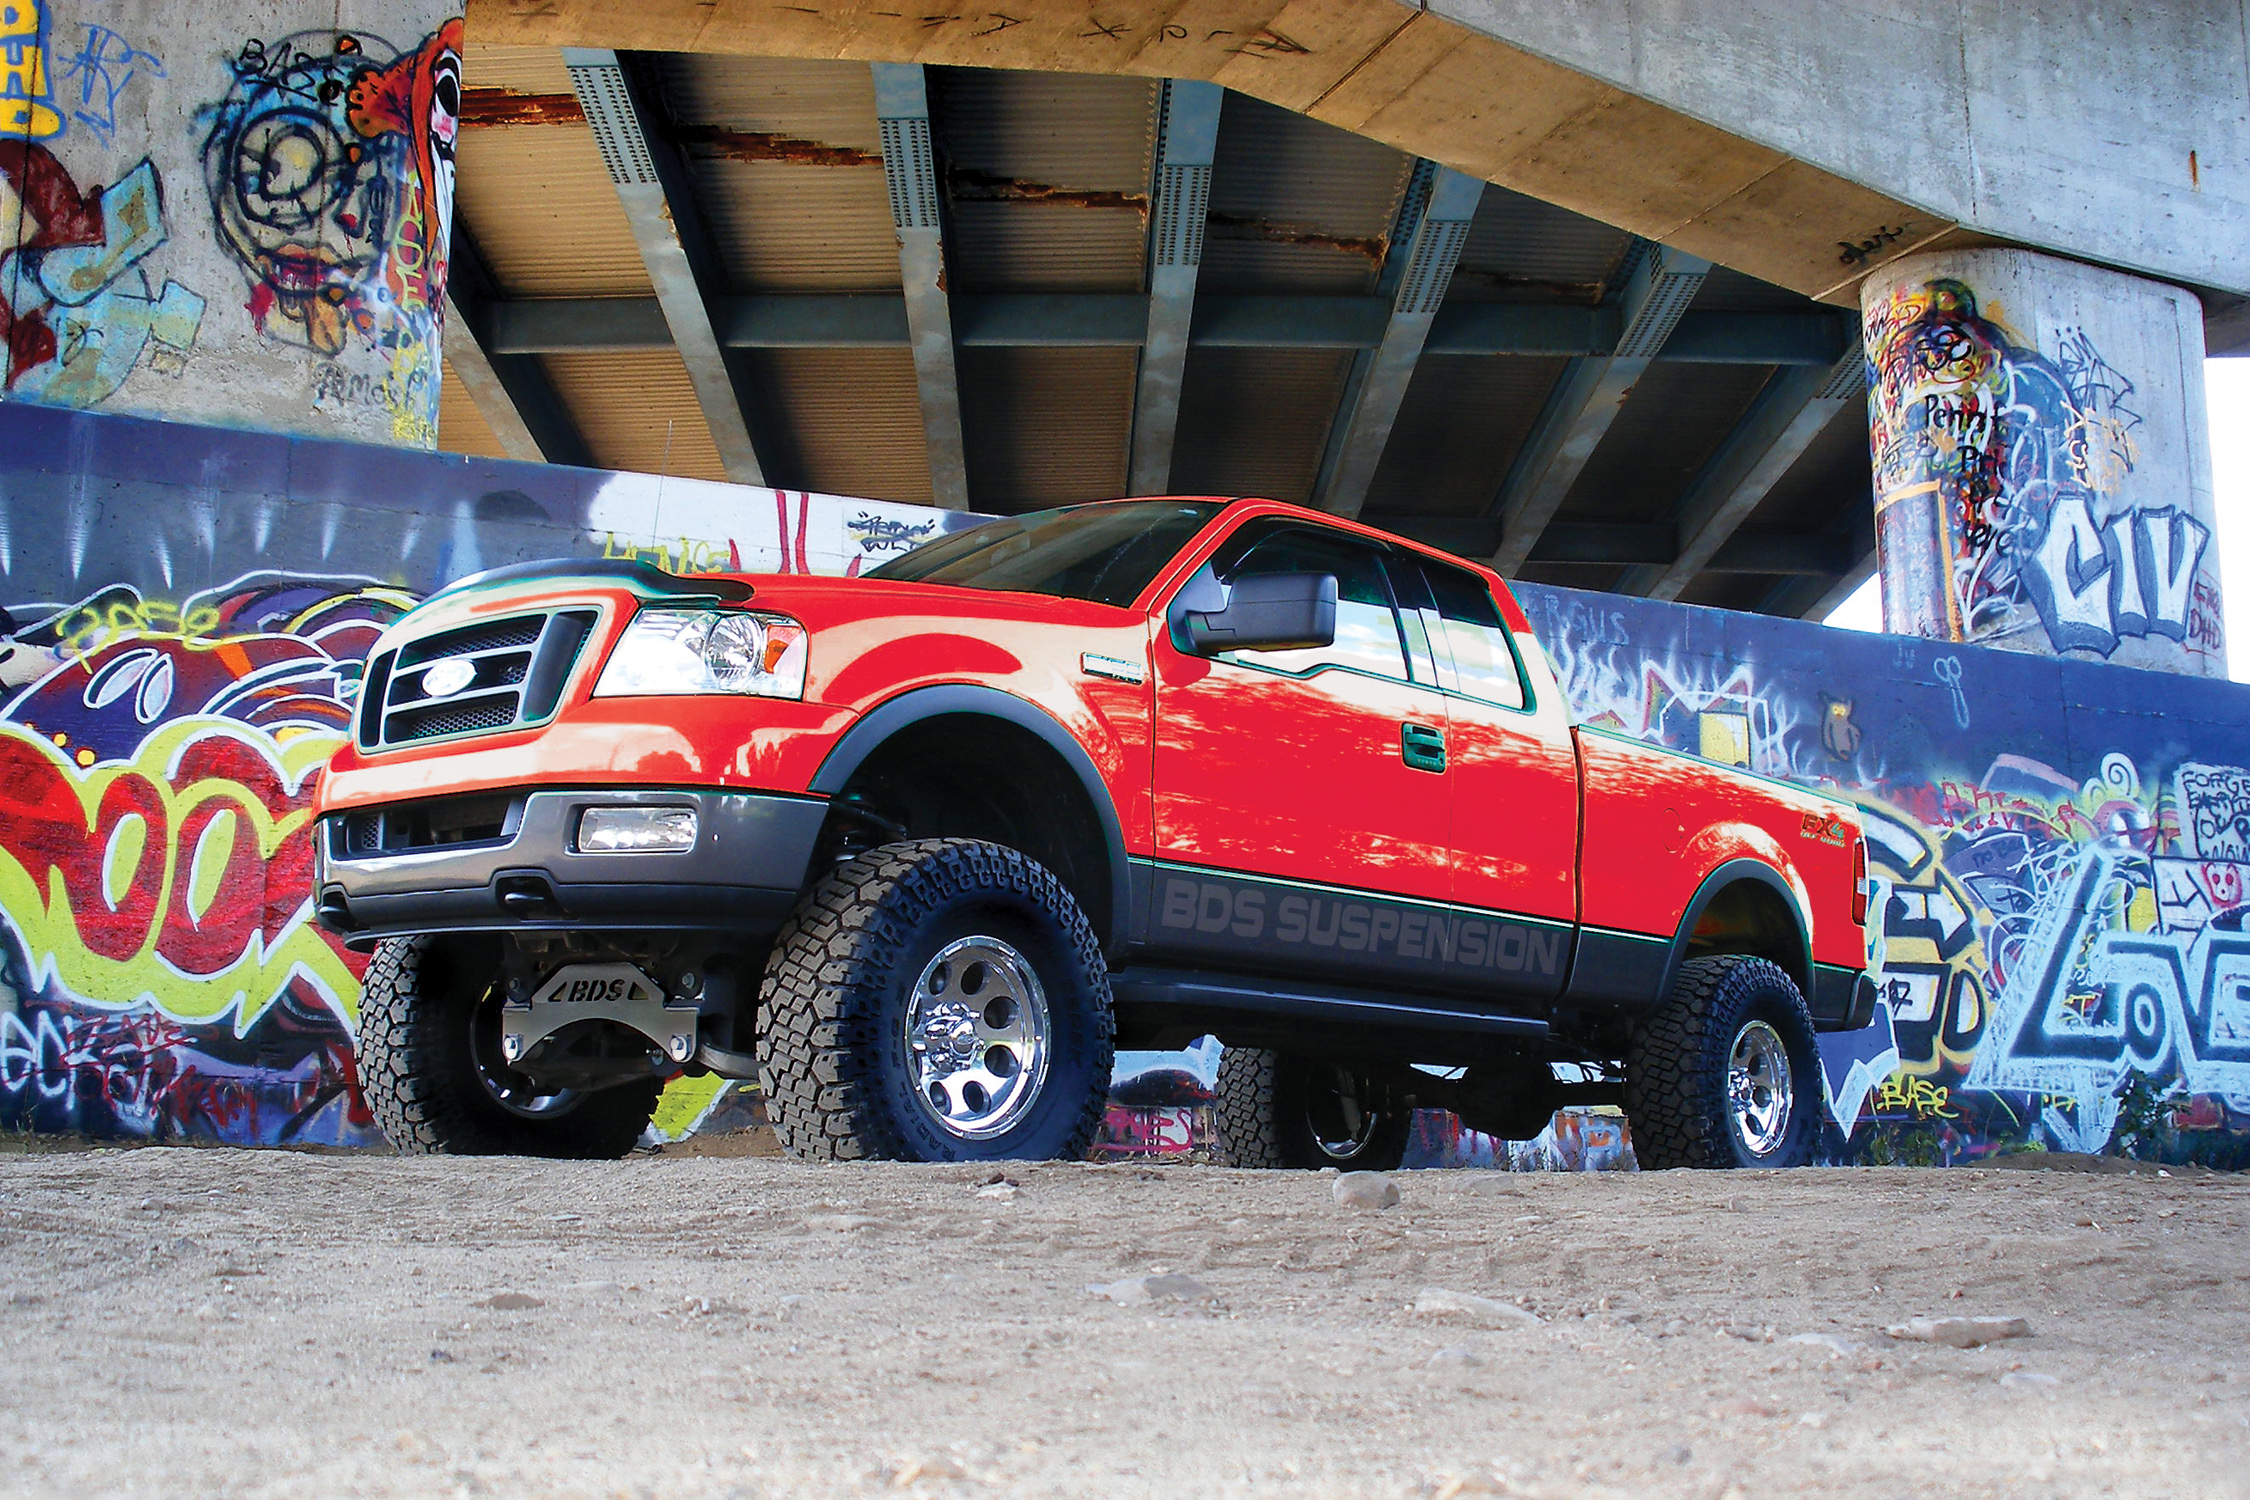 Bds 6 8 Lifts For 2004 2008 Ford F150 4wd Trucks Toyota Truck Lifted Press Release 190 And Suspension